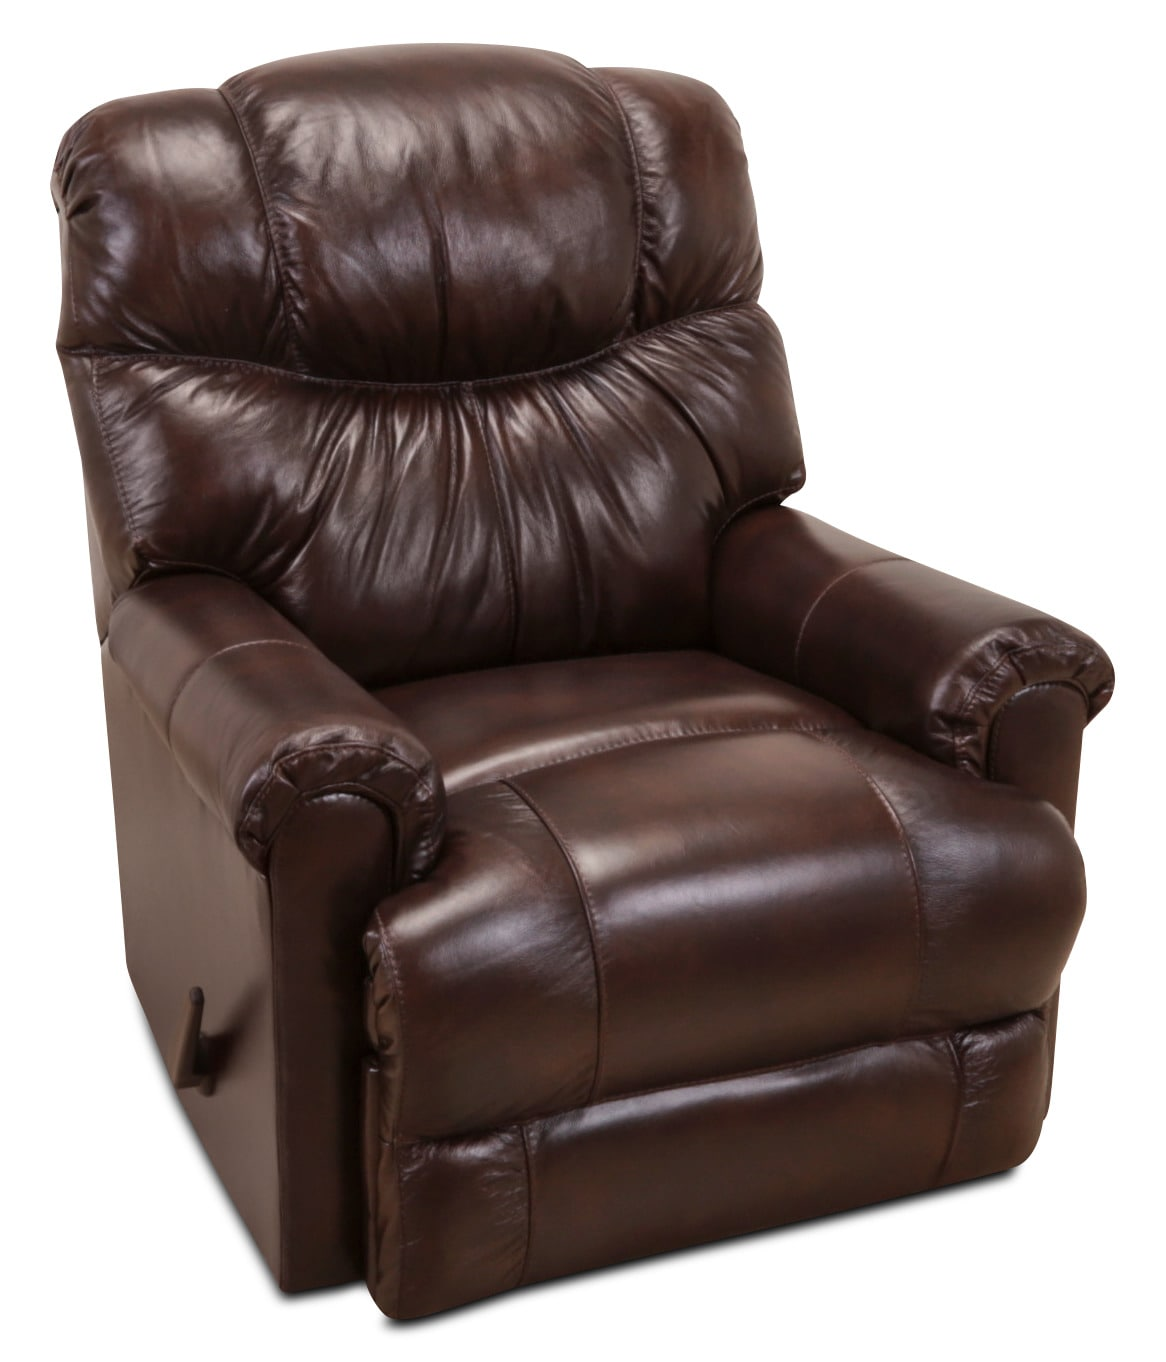 4524 Genuine Leather Rocker Reclining Chair – Java